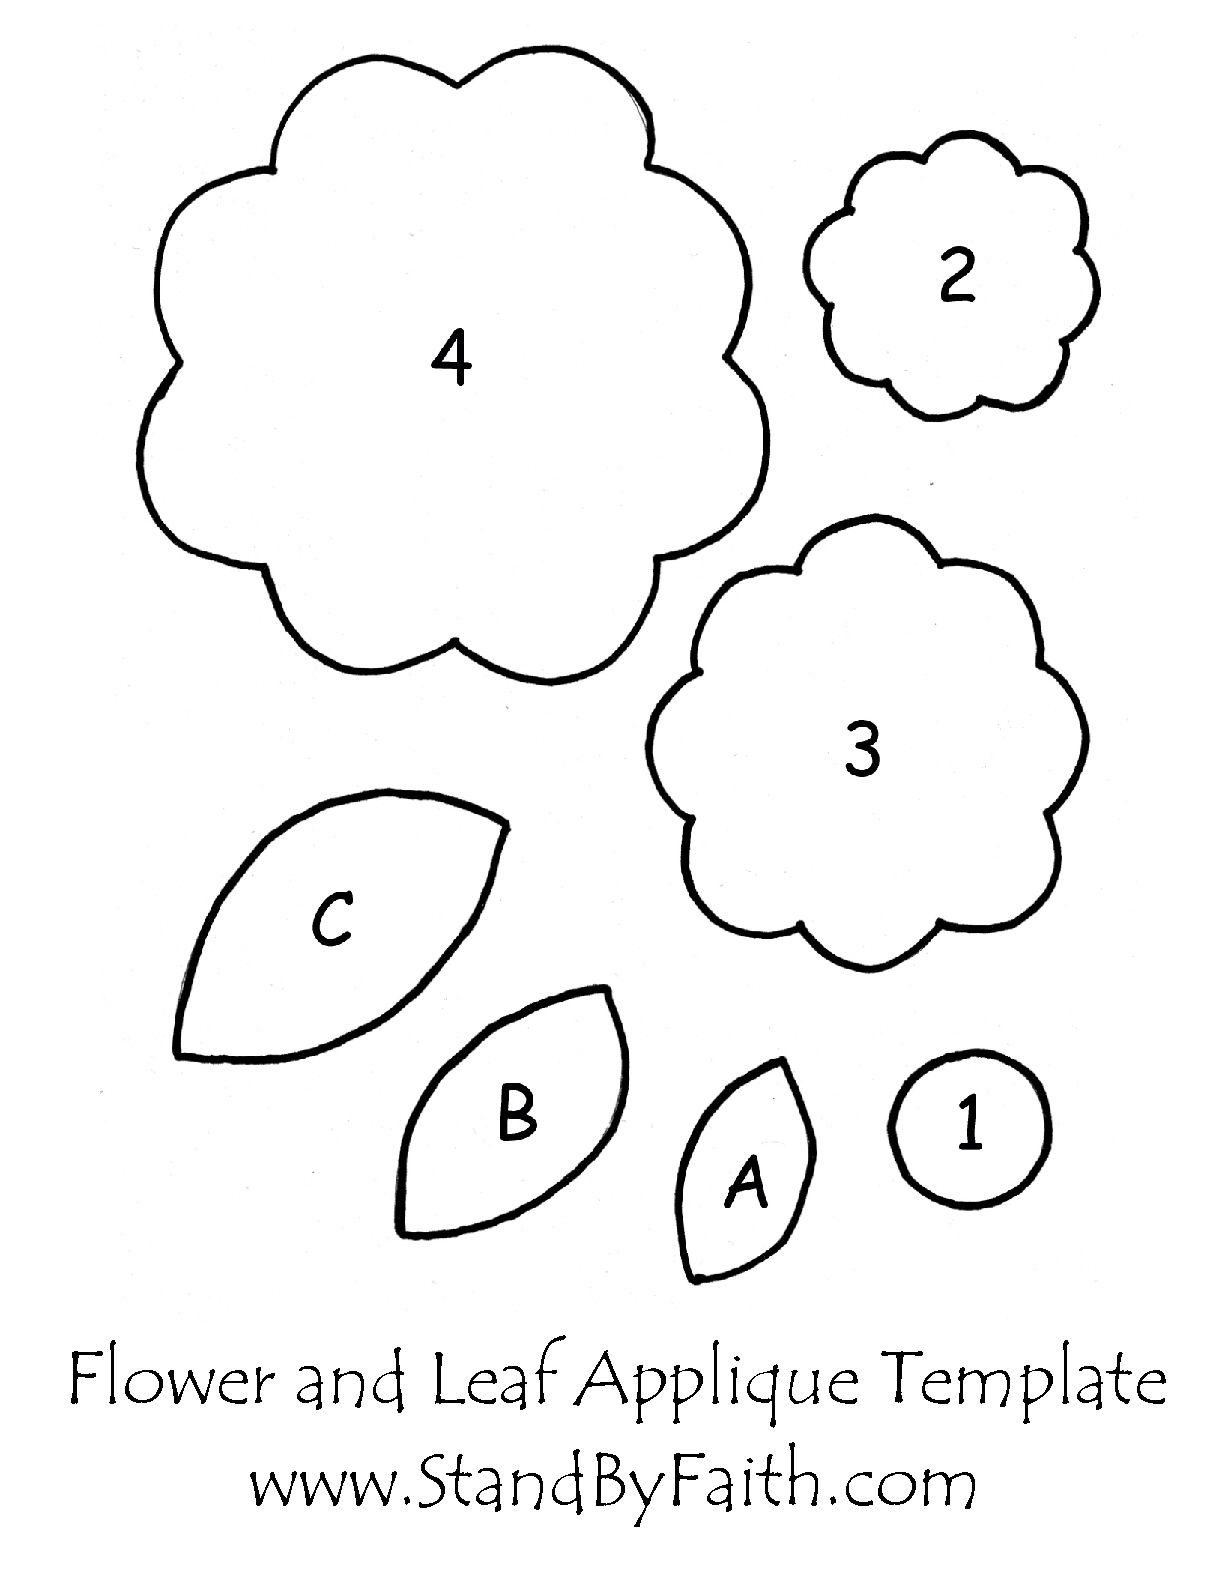 Free Flower And Leaf Applique Template Paper Flowers Pinterest